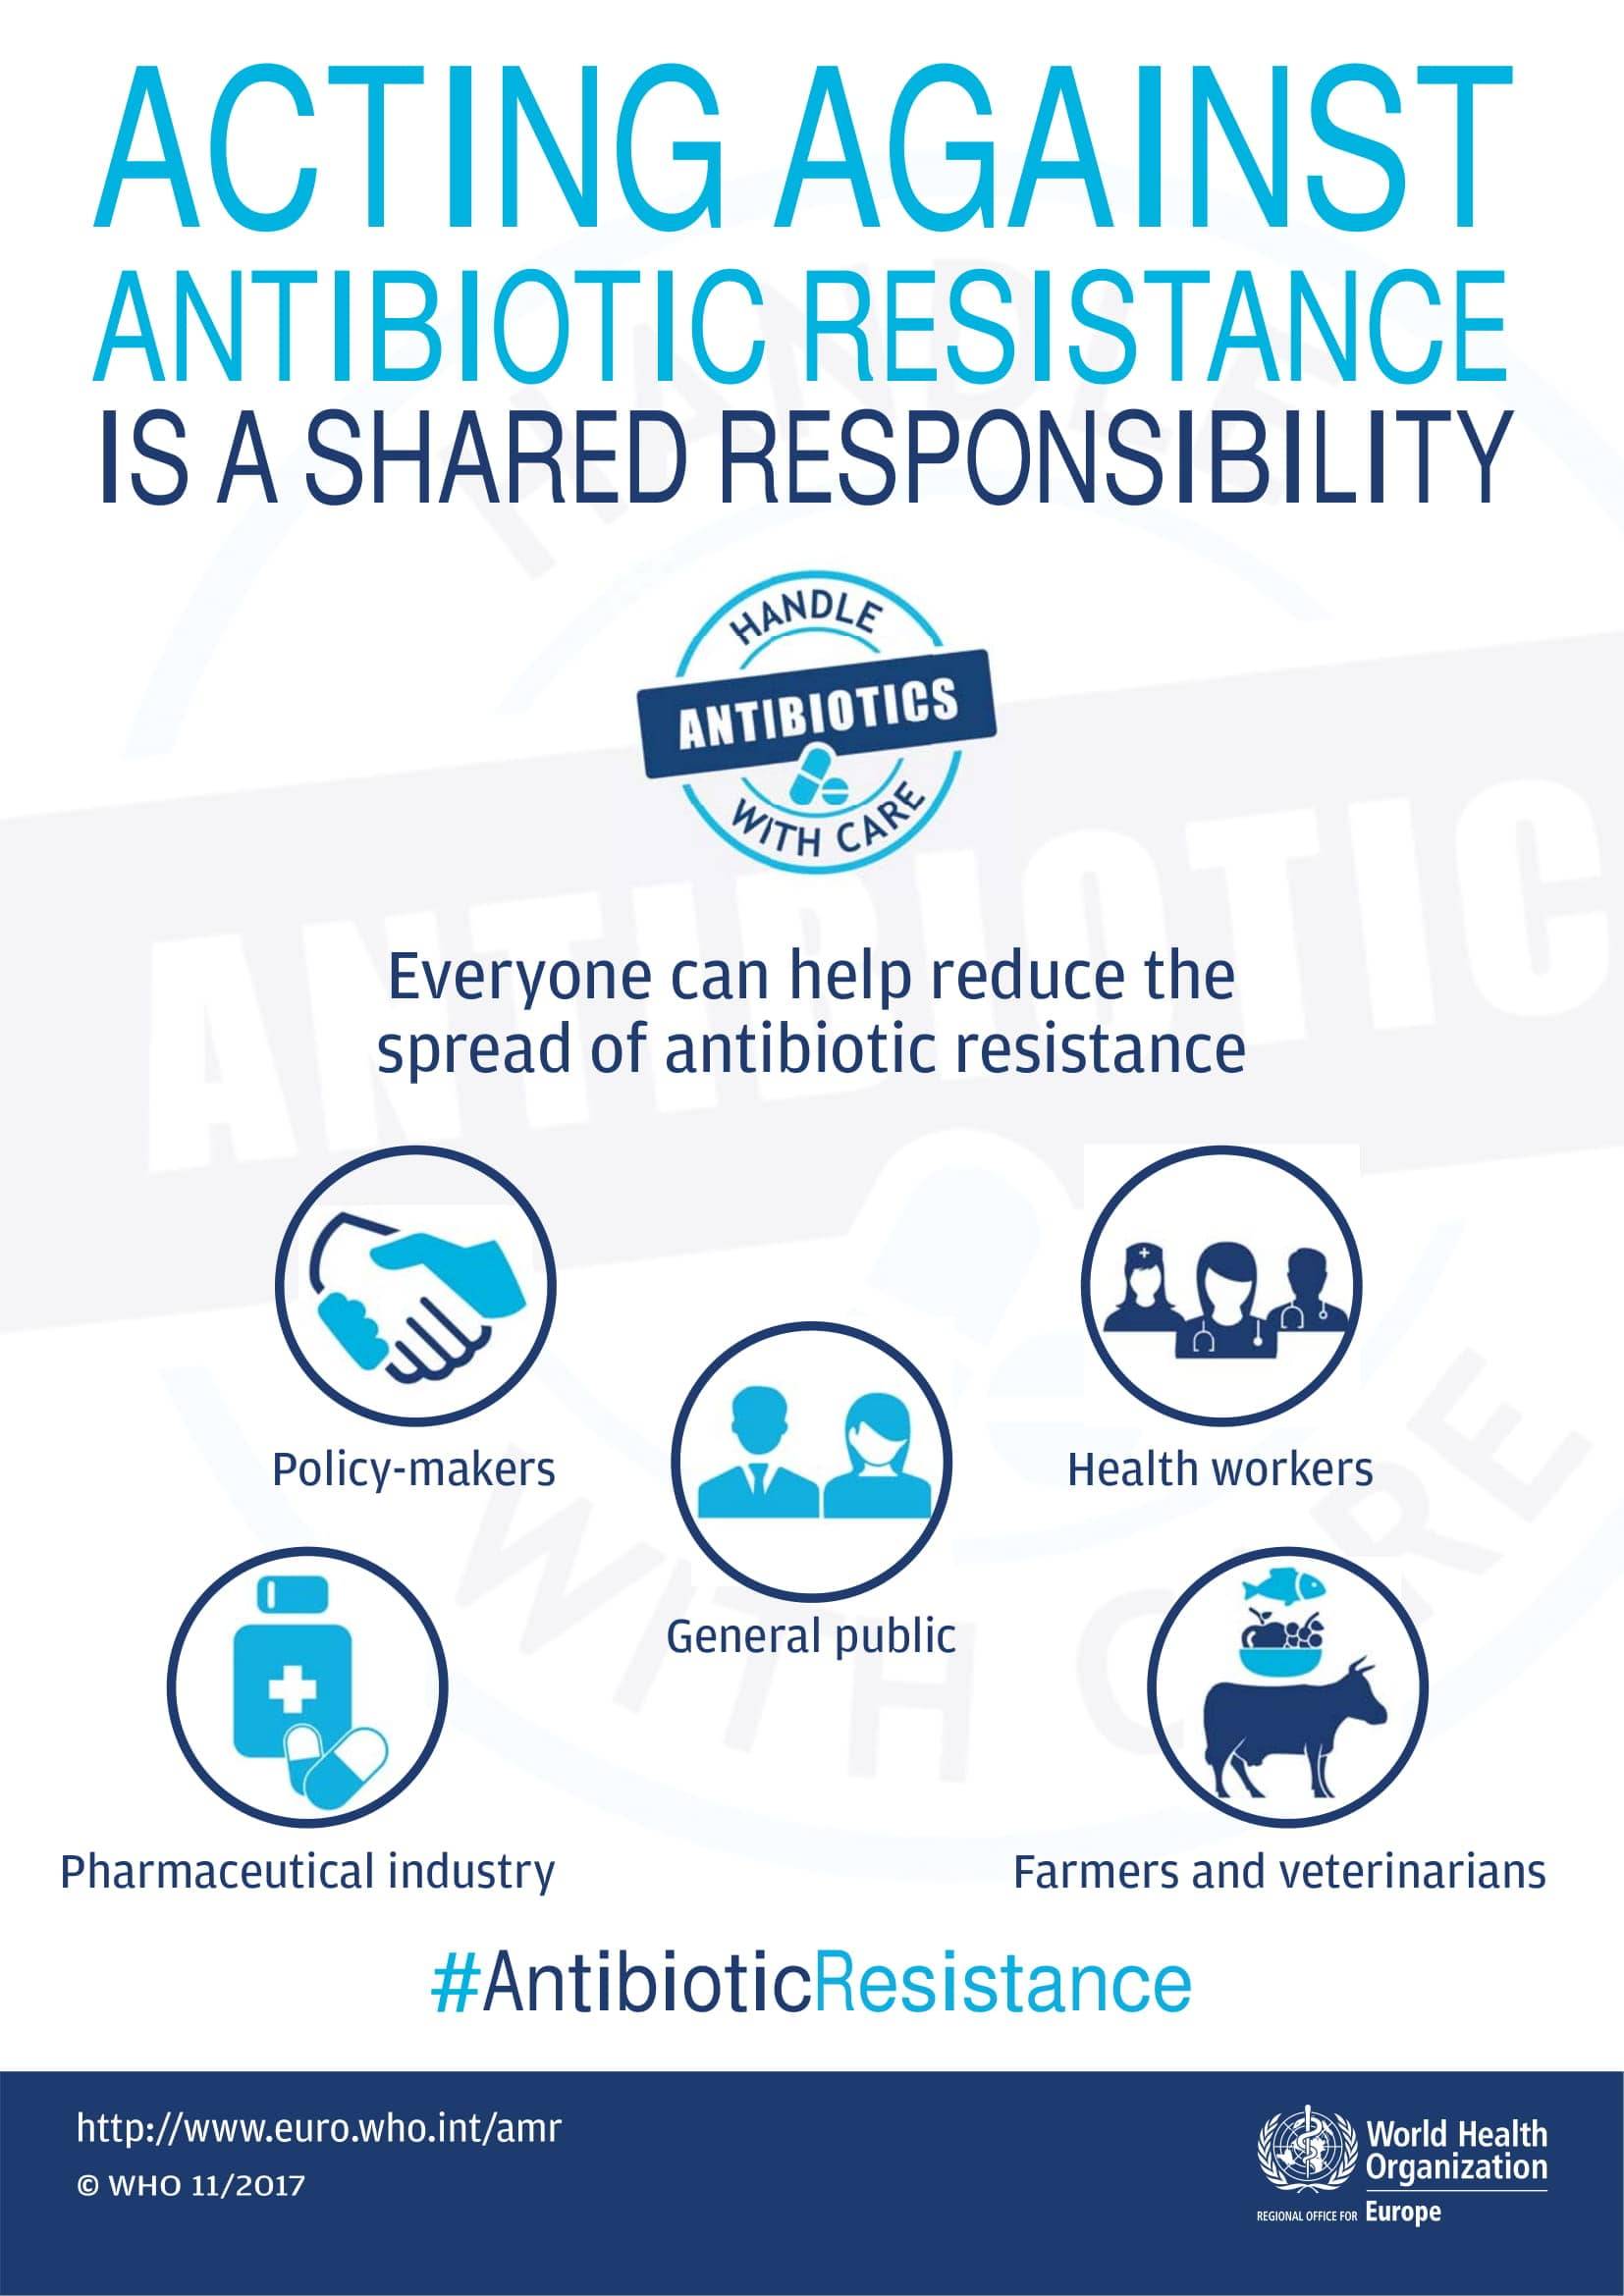 Acting against antibiotic resistance is a shared responsibility